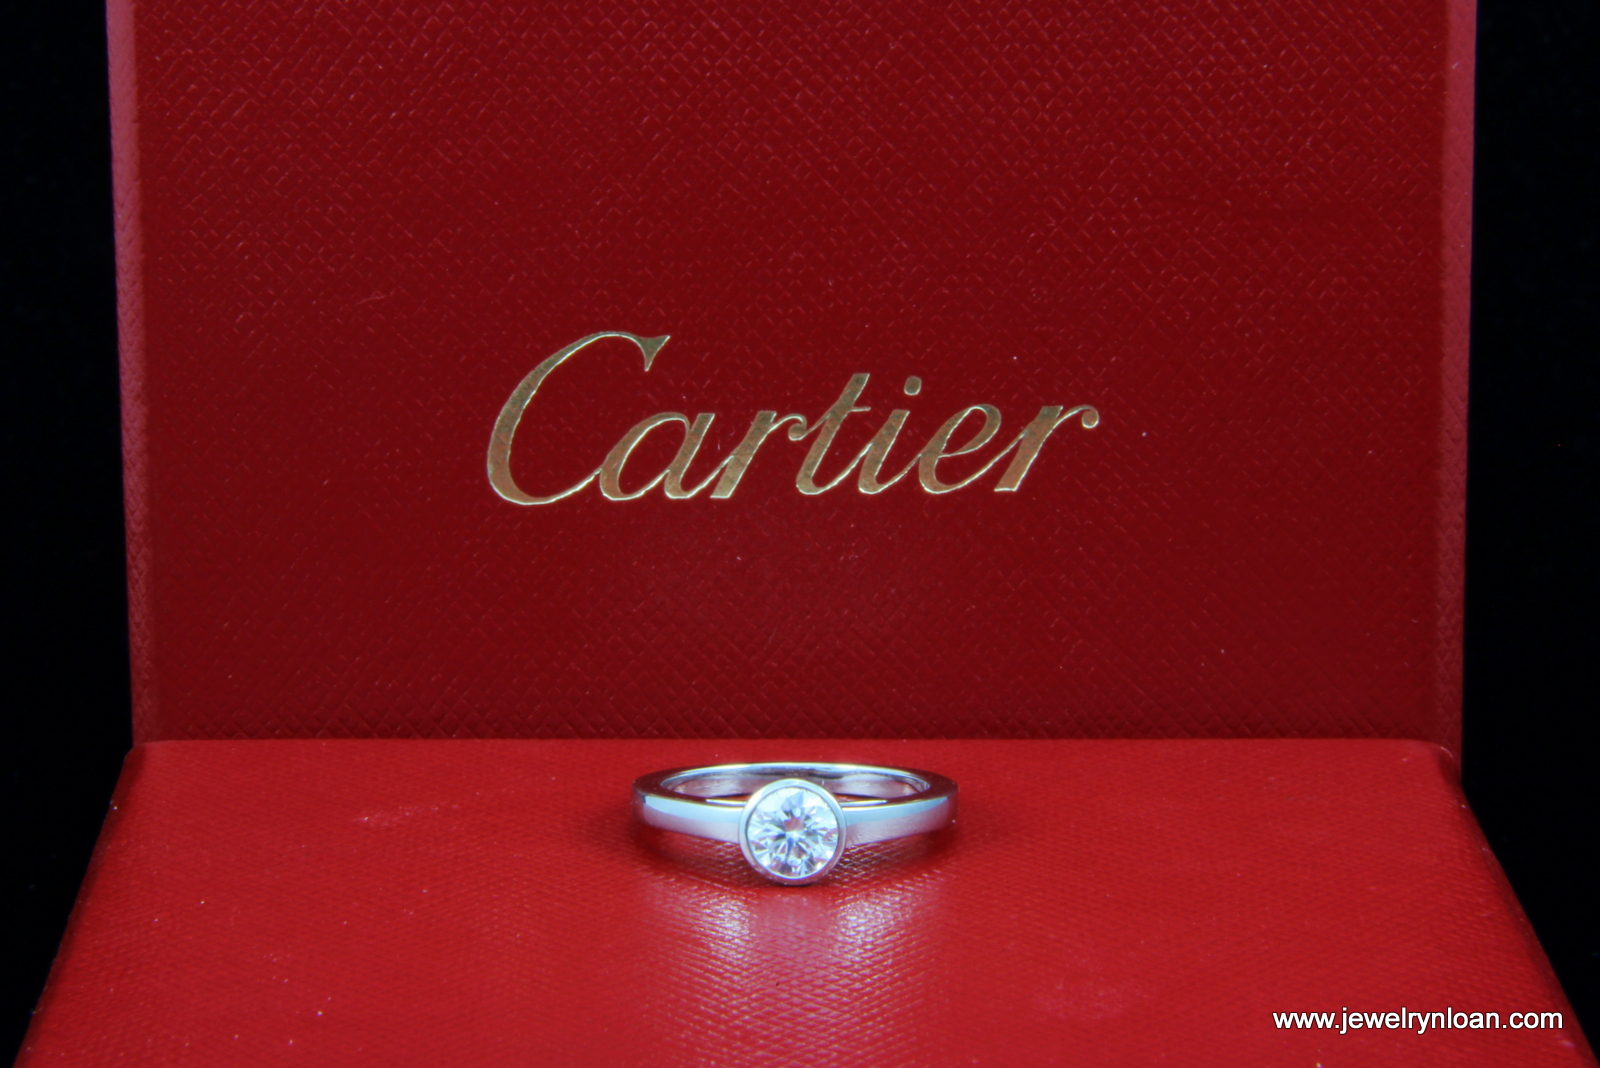 Cartier Diamond Ring in Orange County